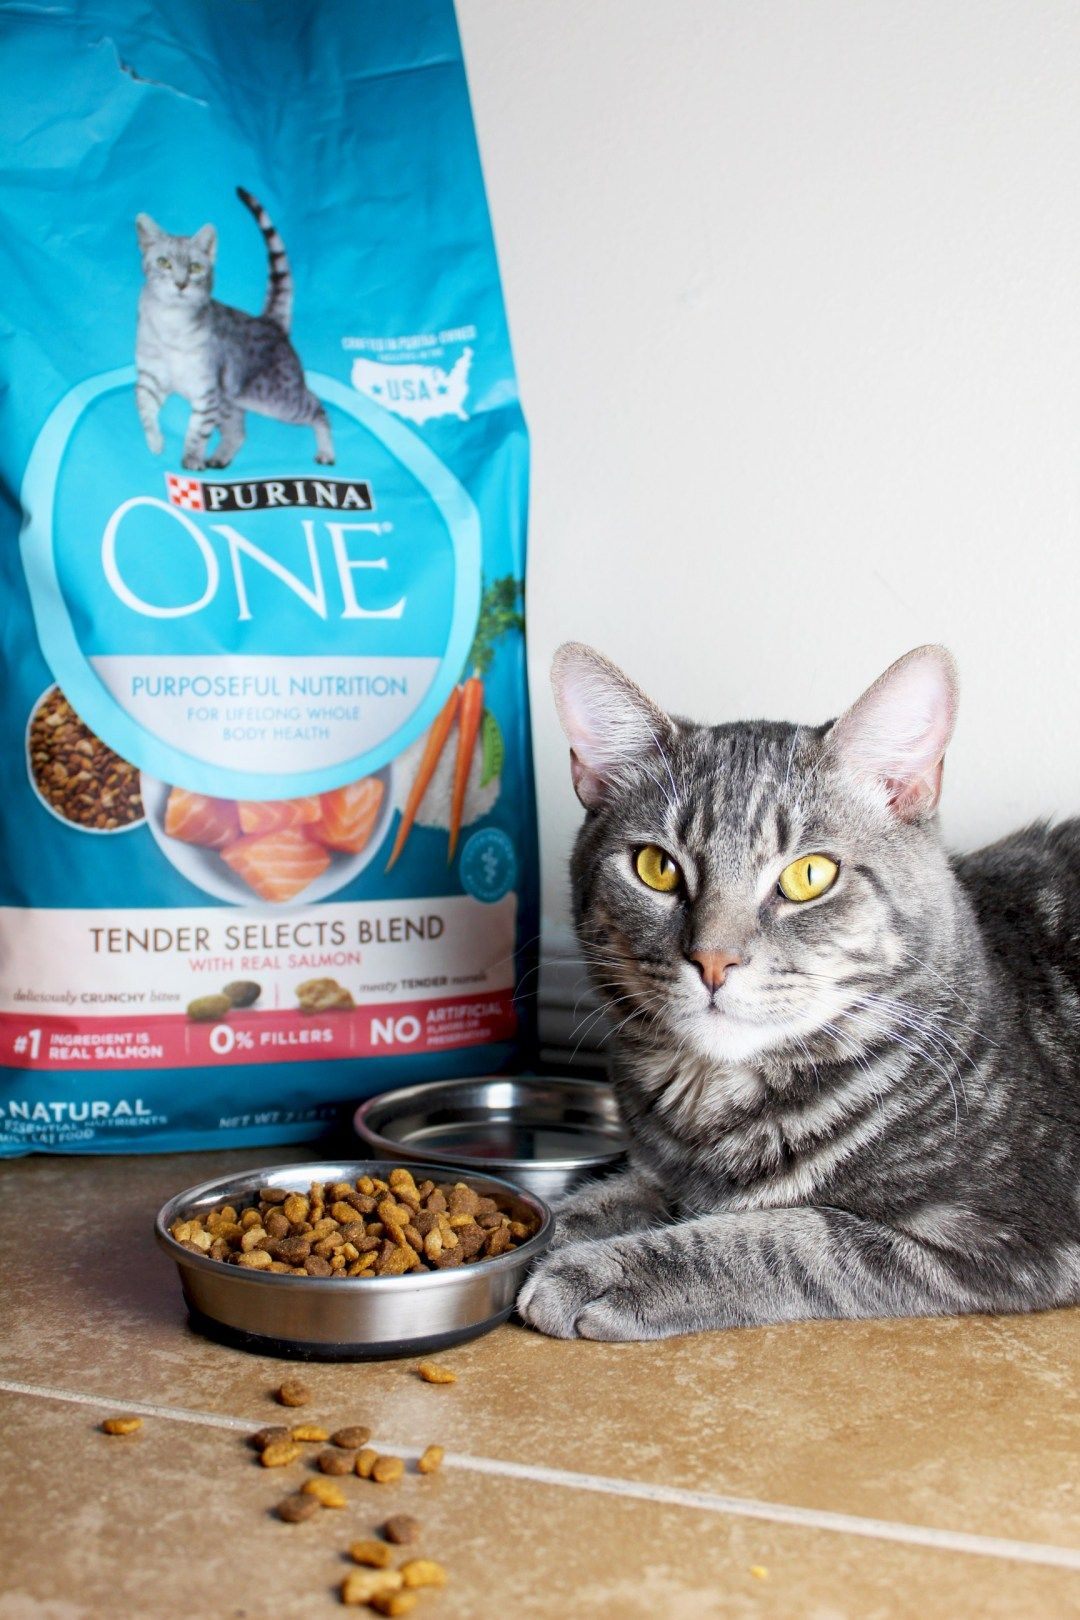 Purina One Cat Food Purina One 28 Day Challenge Purina One Tender Selects Purina One Sensitive Skin And Stomach Cat Care T Purina Best Cat Food Healthy Cat